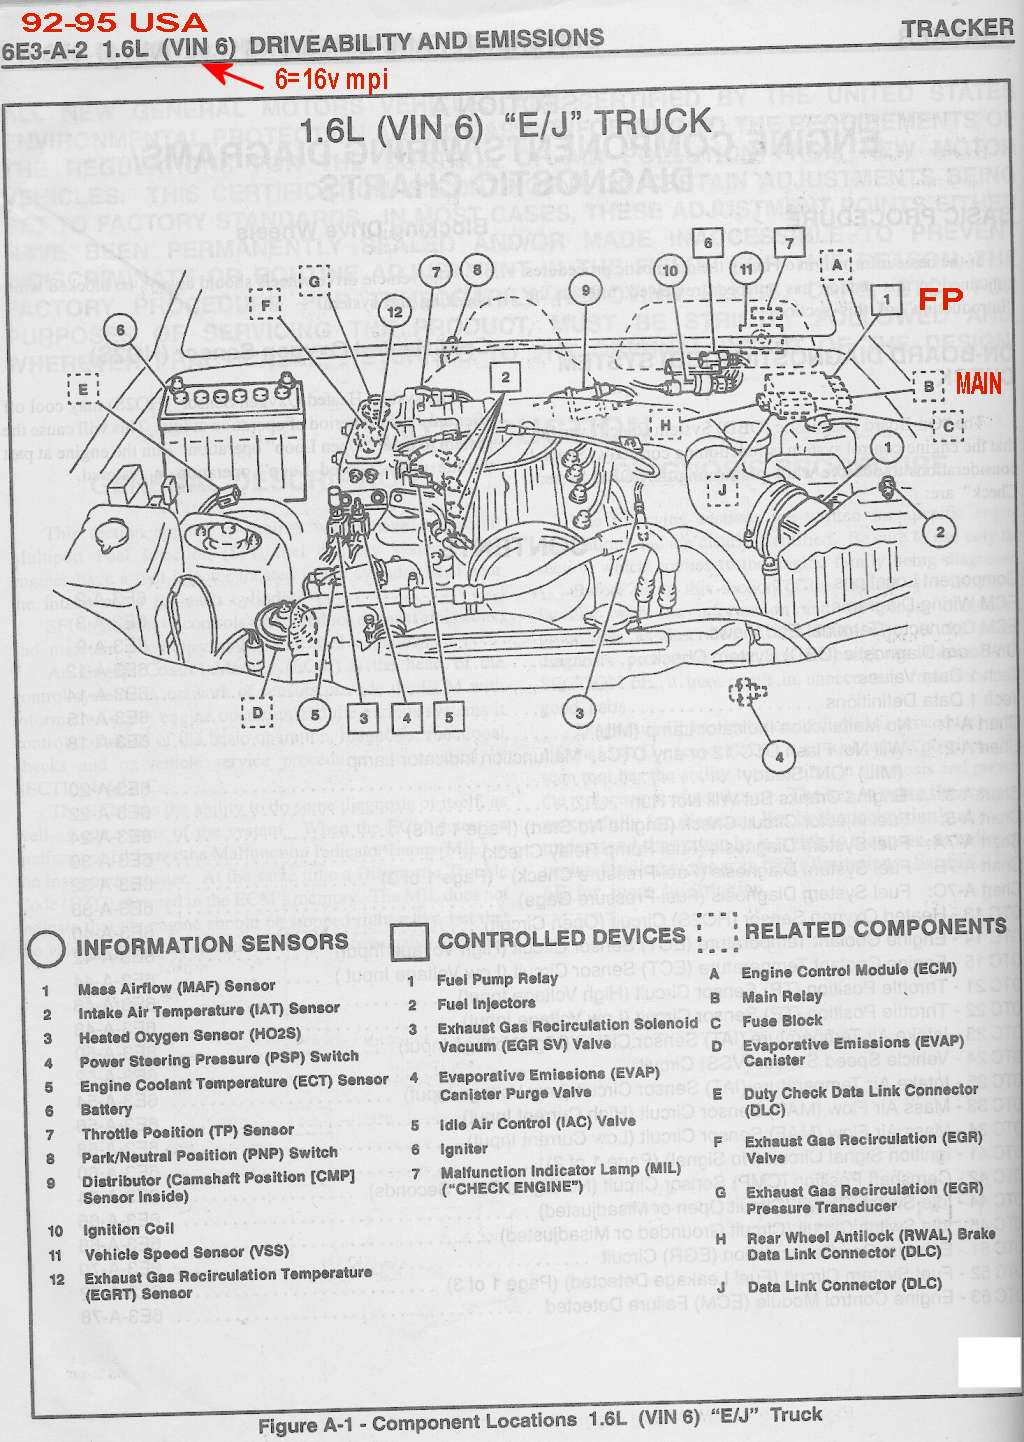 geo tracker parts diagram with Wiring Diagram For 1992 Geo Prizm on Wiring Diagram For 1992 Geo Prizm moreover T23098371 2001 tracker transmission in addition 2000 Chevrolet Tracker 2 0l Manual 4wd Suv Wiring Diagrams in addition FW BEARINGS likewise 23373 Automatic Locking Hubs 3 Screw 1996 Rebuild.